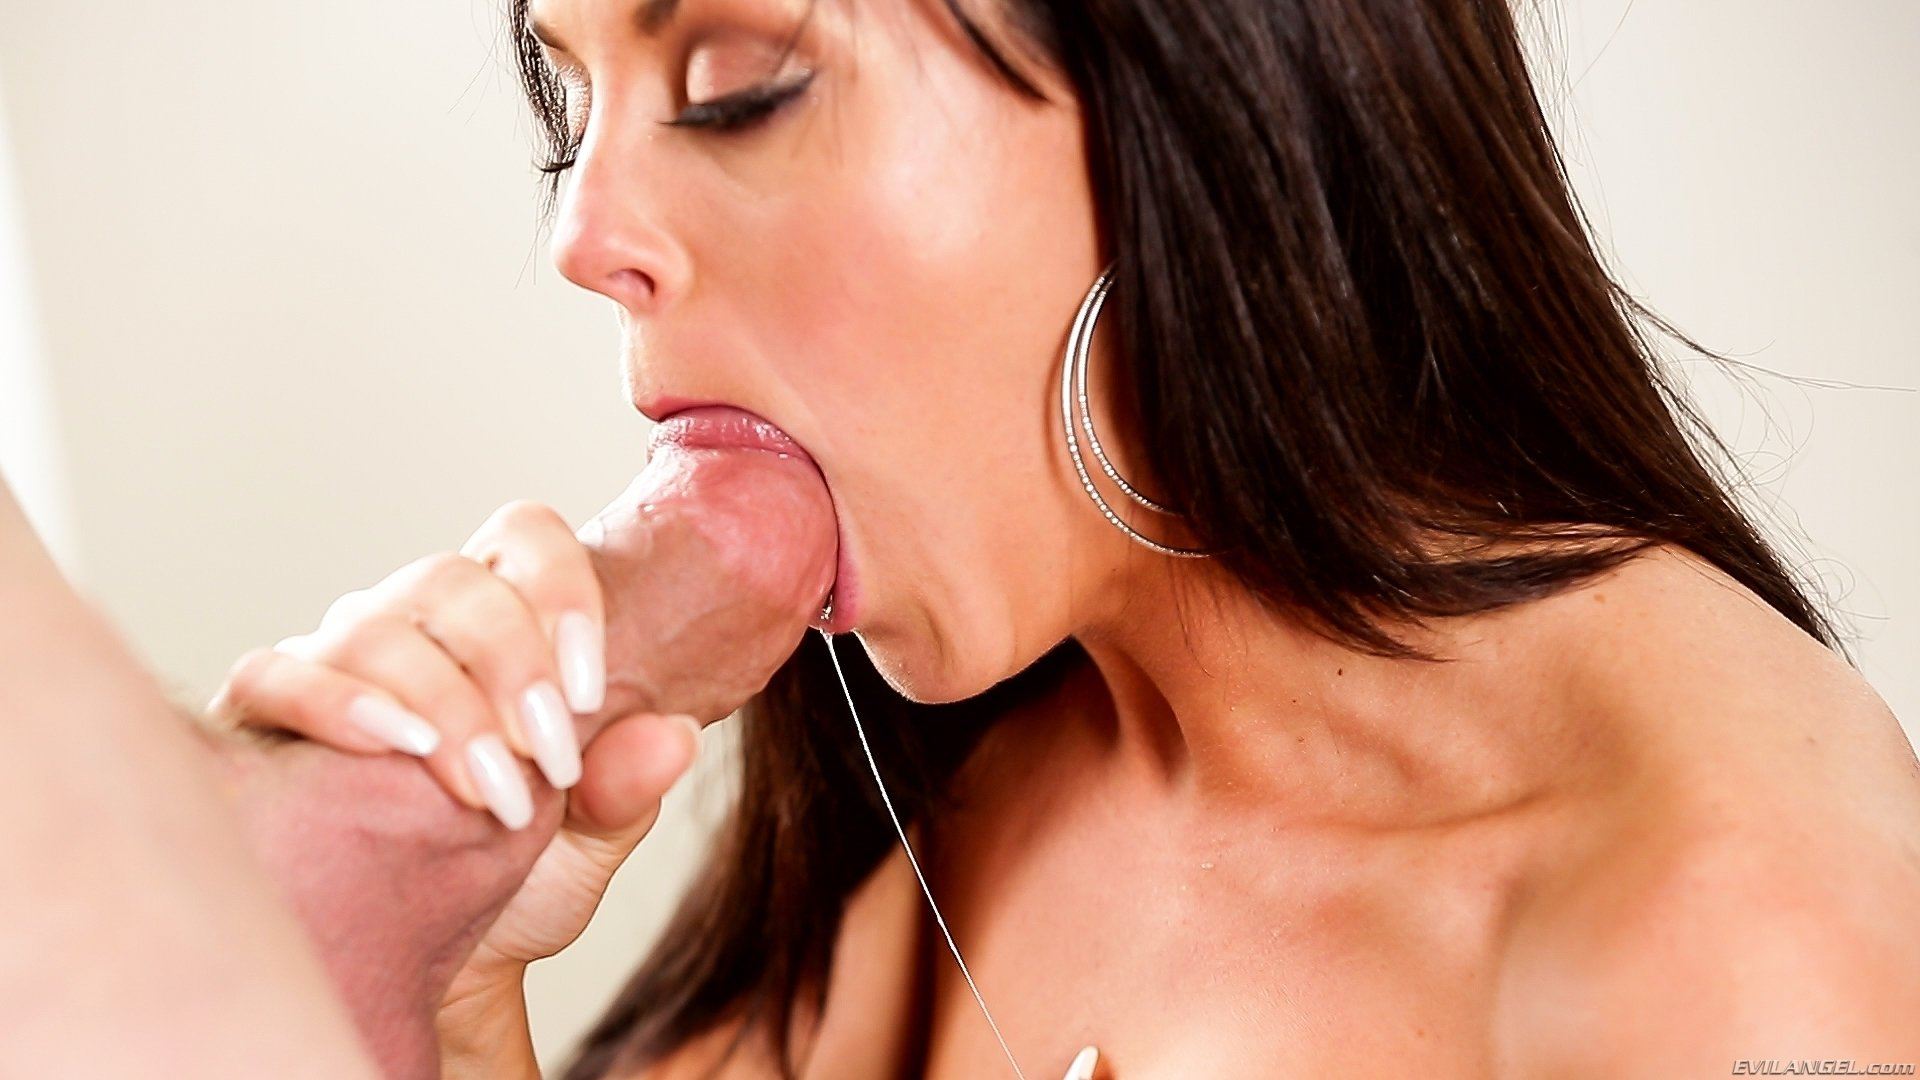 Mom blowjob free photo clips